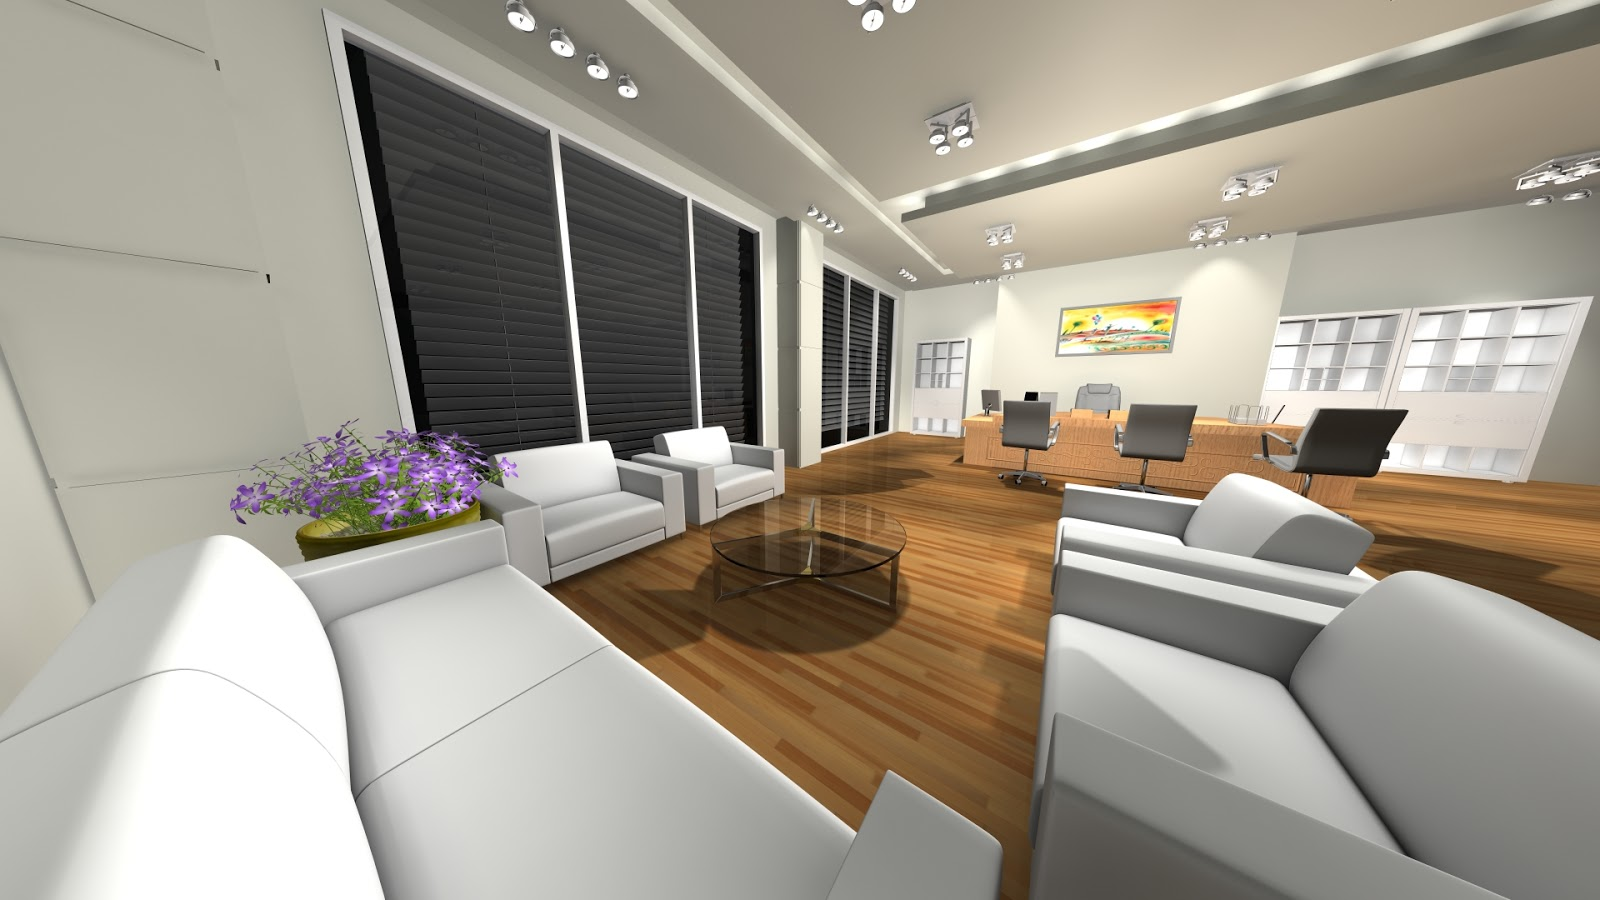 Sajid designer office room 3d interior design 3ds max for 3d interior design online